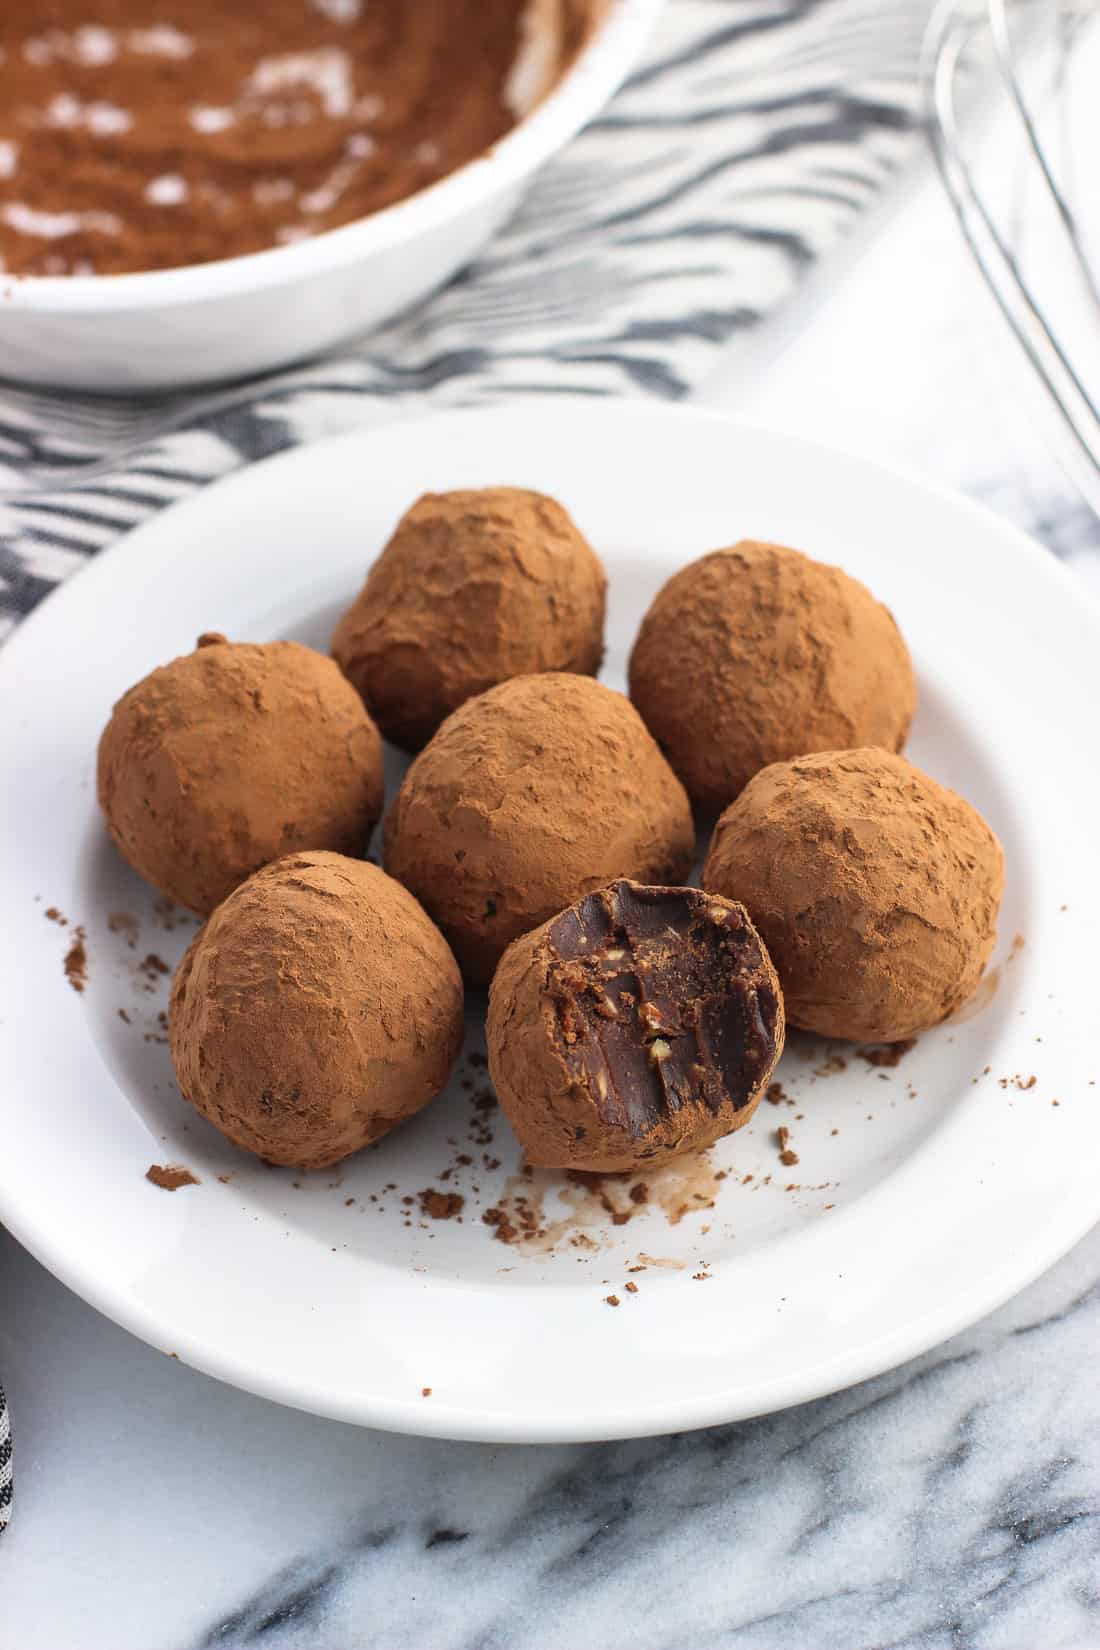 Seven truffles dusted in cocoa powder on a ceramic dessert plate, with the front truffle having a bite taken out of it. A bowl of cocoa powder and a whisk are in the background.